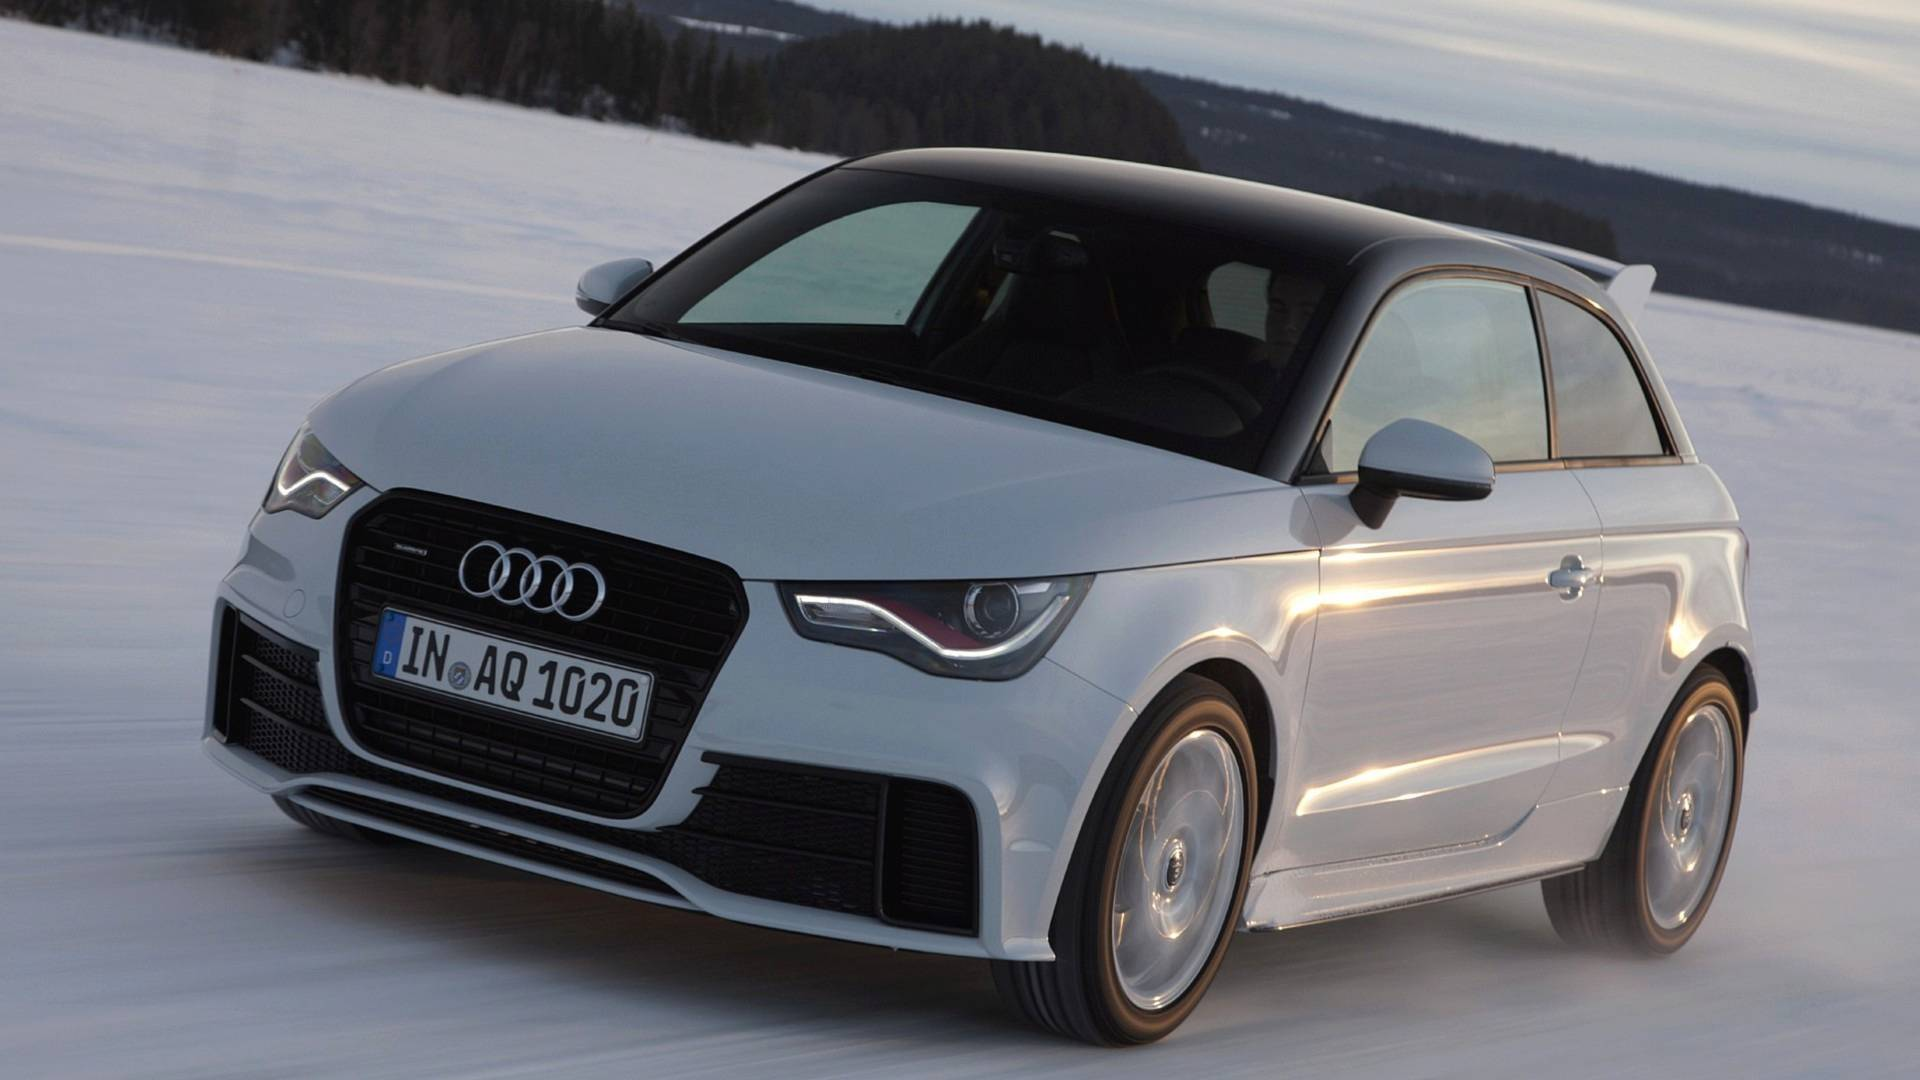 audi to apply two tone paint in one spraying process from 2019. Black Bedroom Furniture Sets. Home Design Ideas